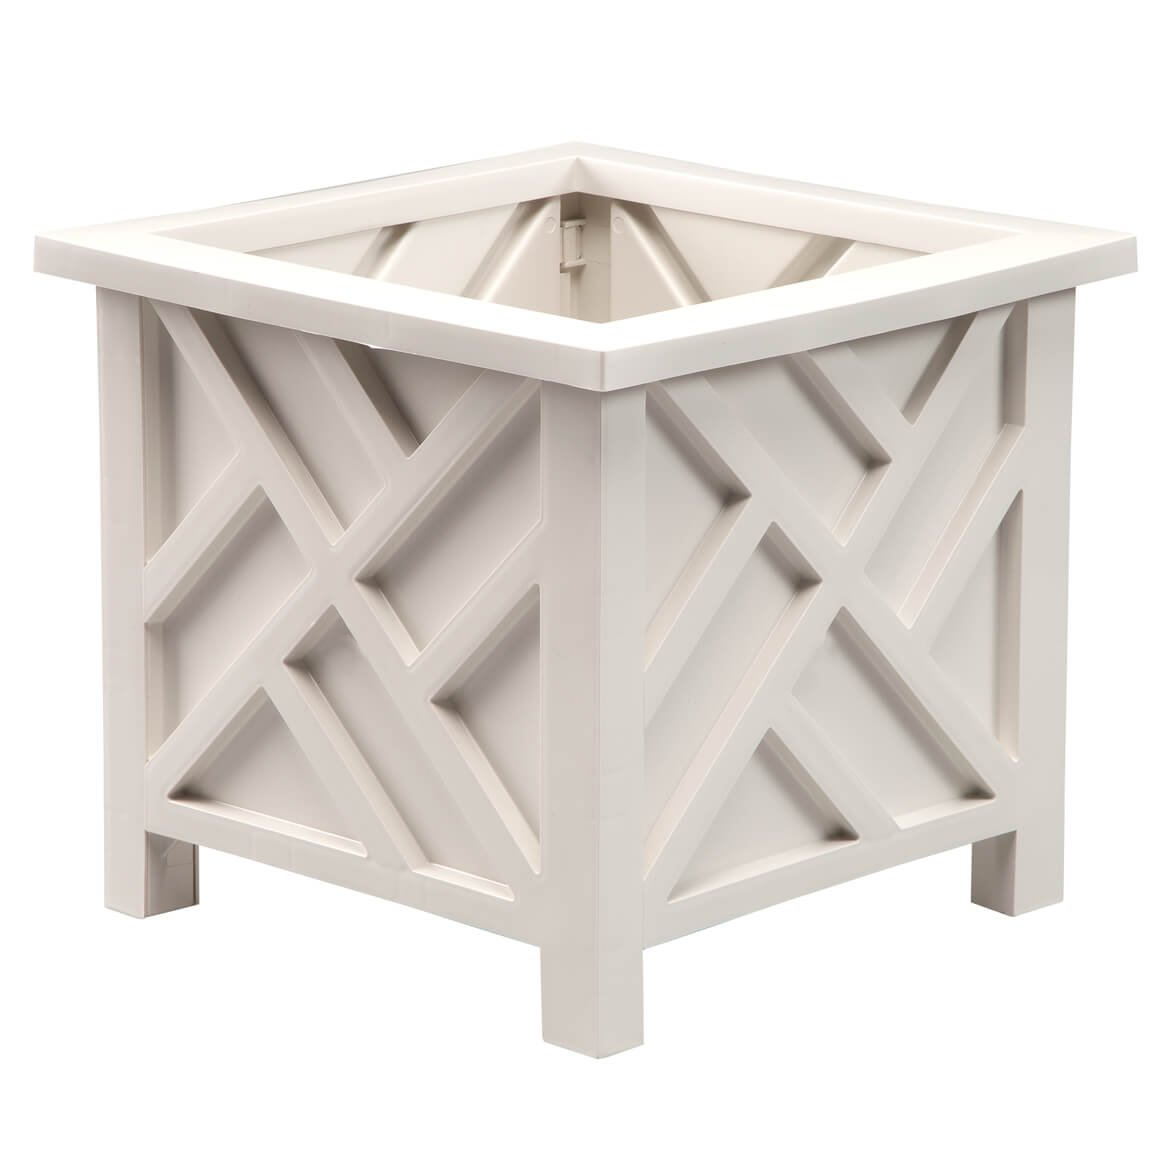 Miles Kimball Chippendale Planter - White